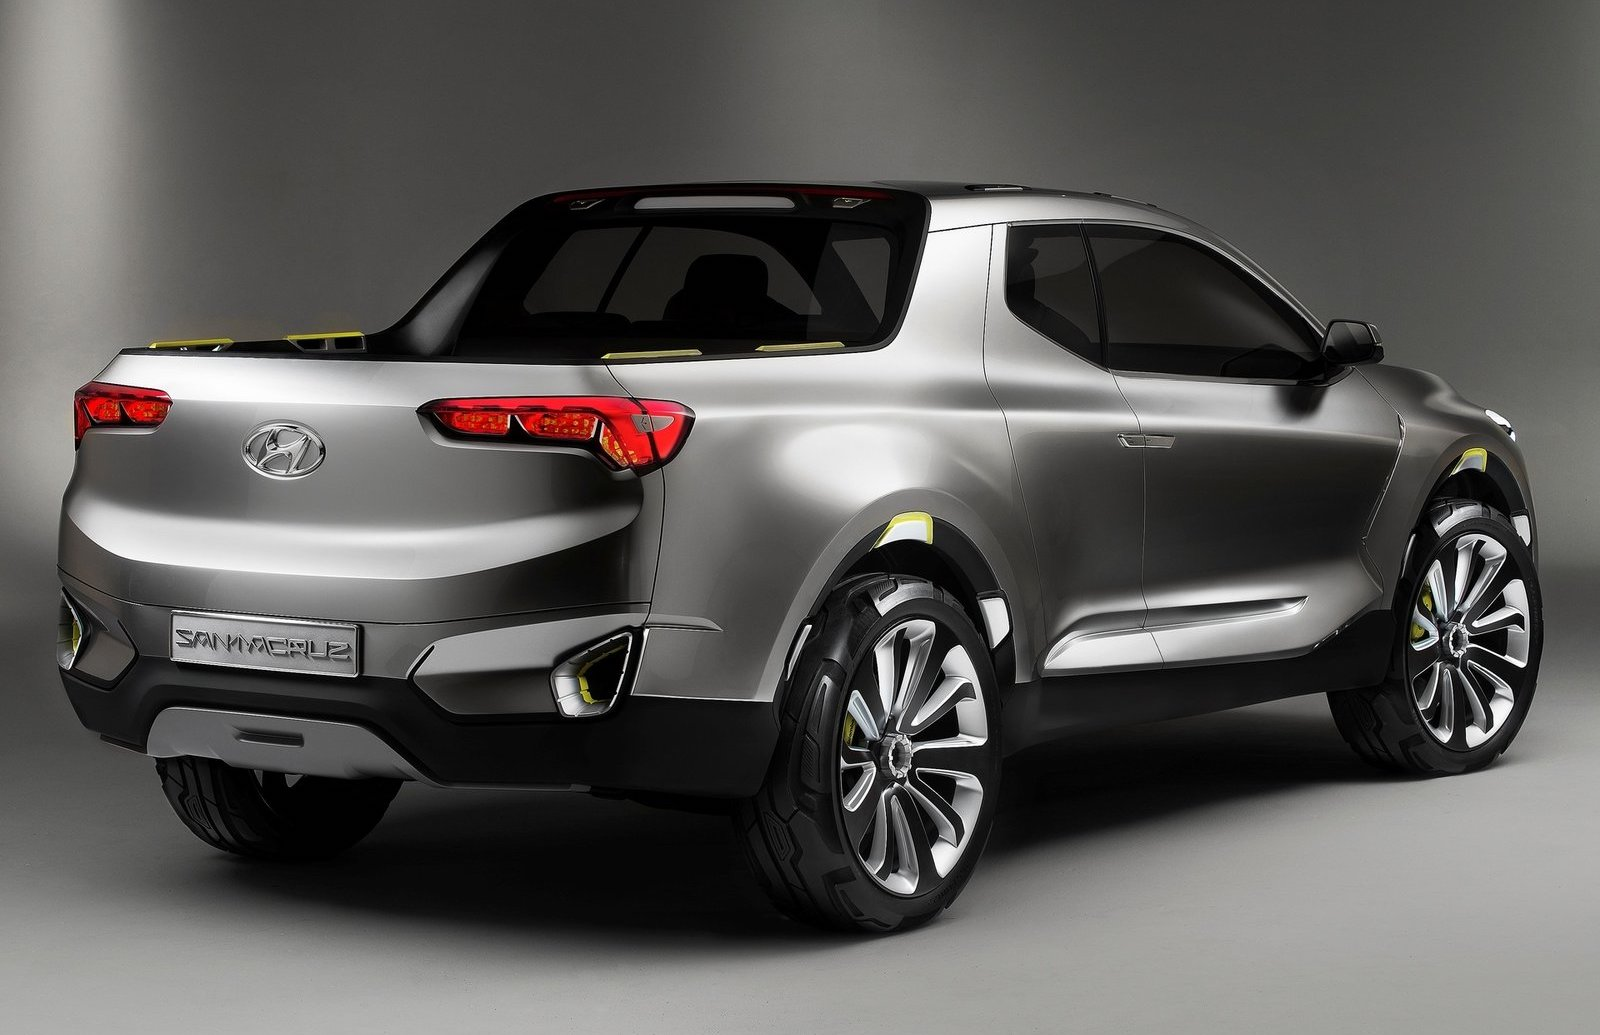 A Hyundai pickup is definitely coming to the U.S....someday